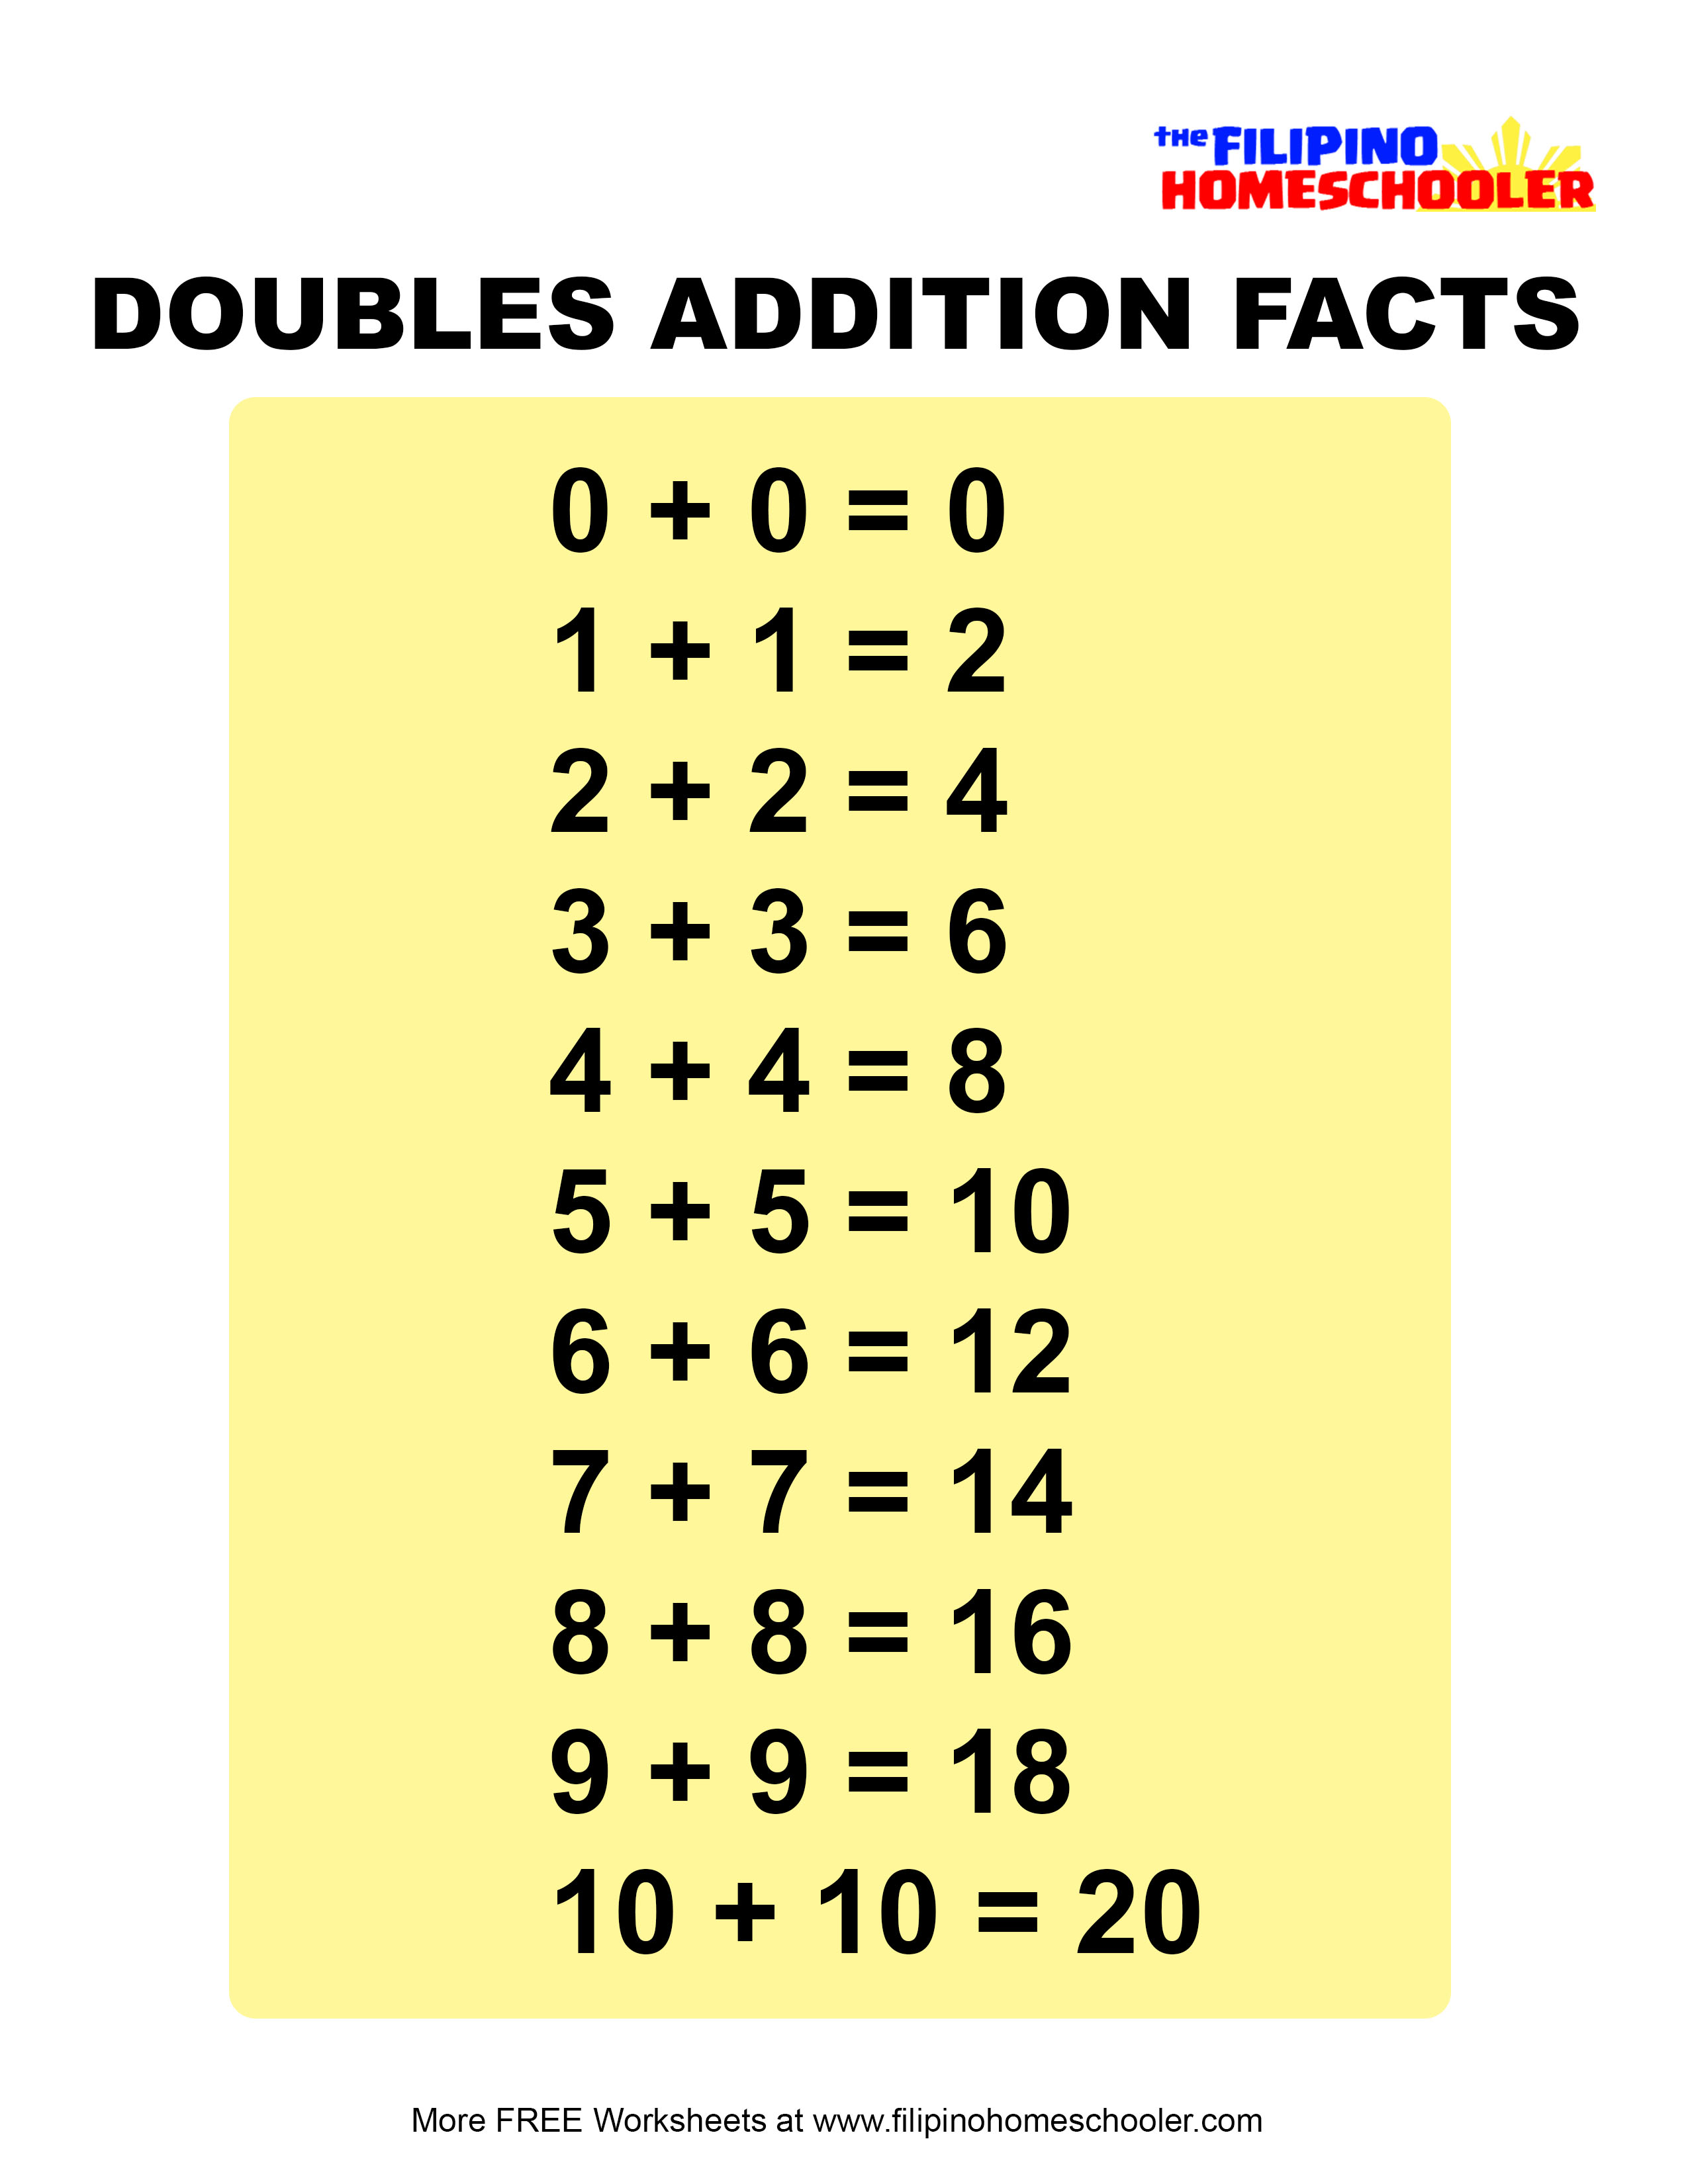 Adding Doubles Worksheets And Teaching Strategies